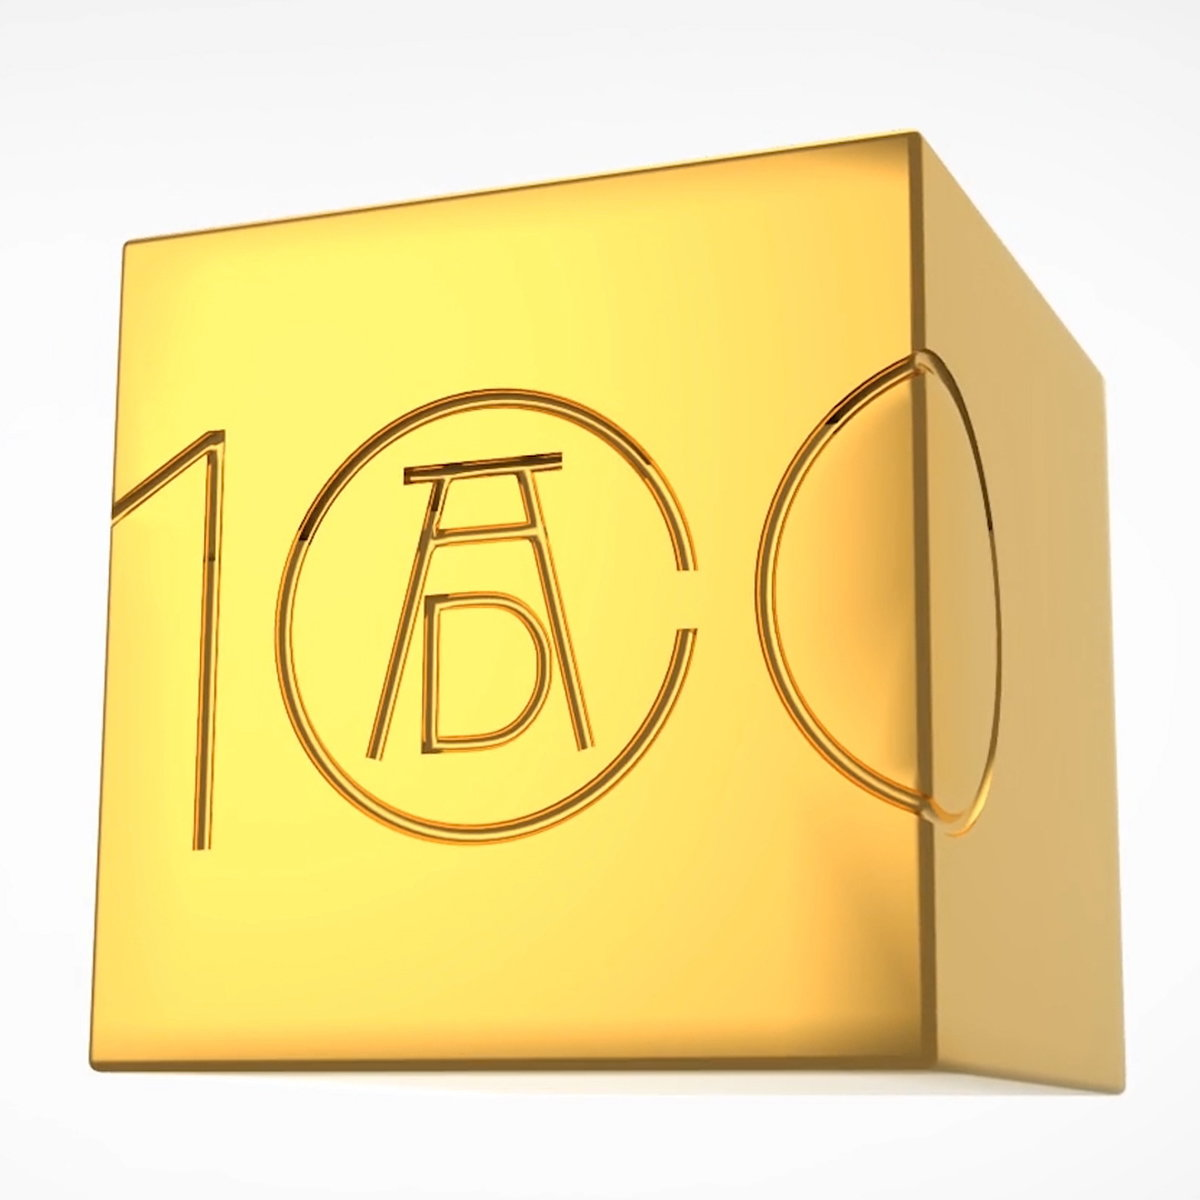 ADC 100th Awards Winners Announced